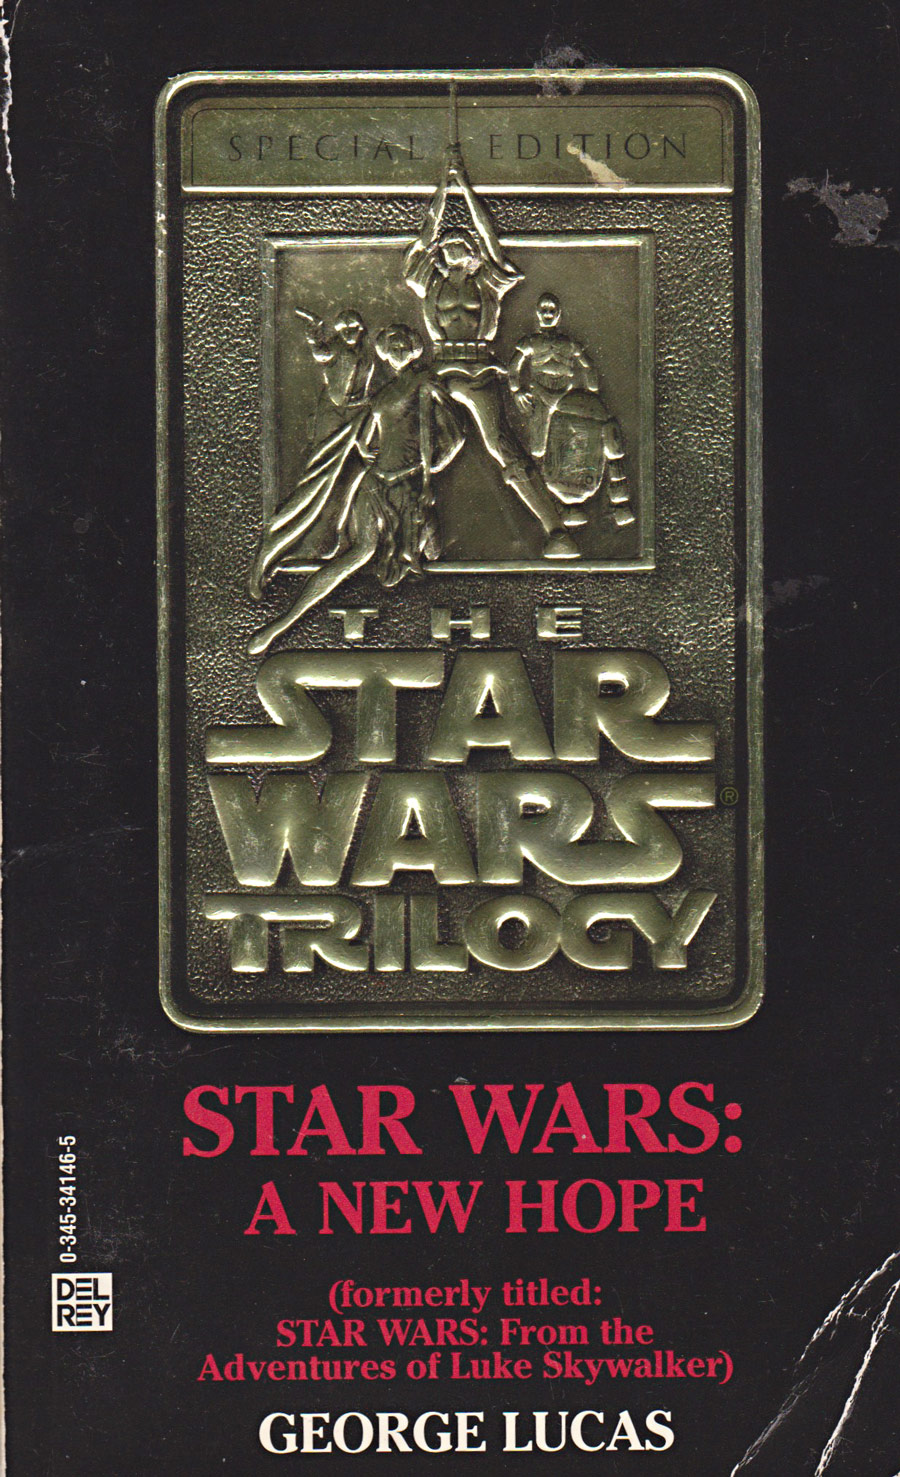 Star Wars: A New Hope (Special Edition paperback)